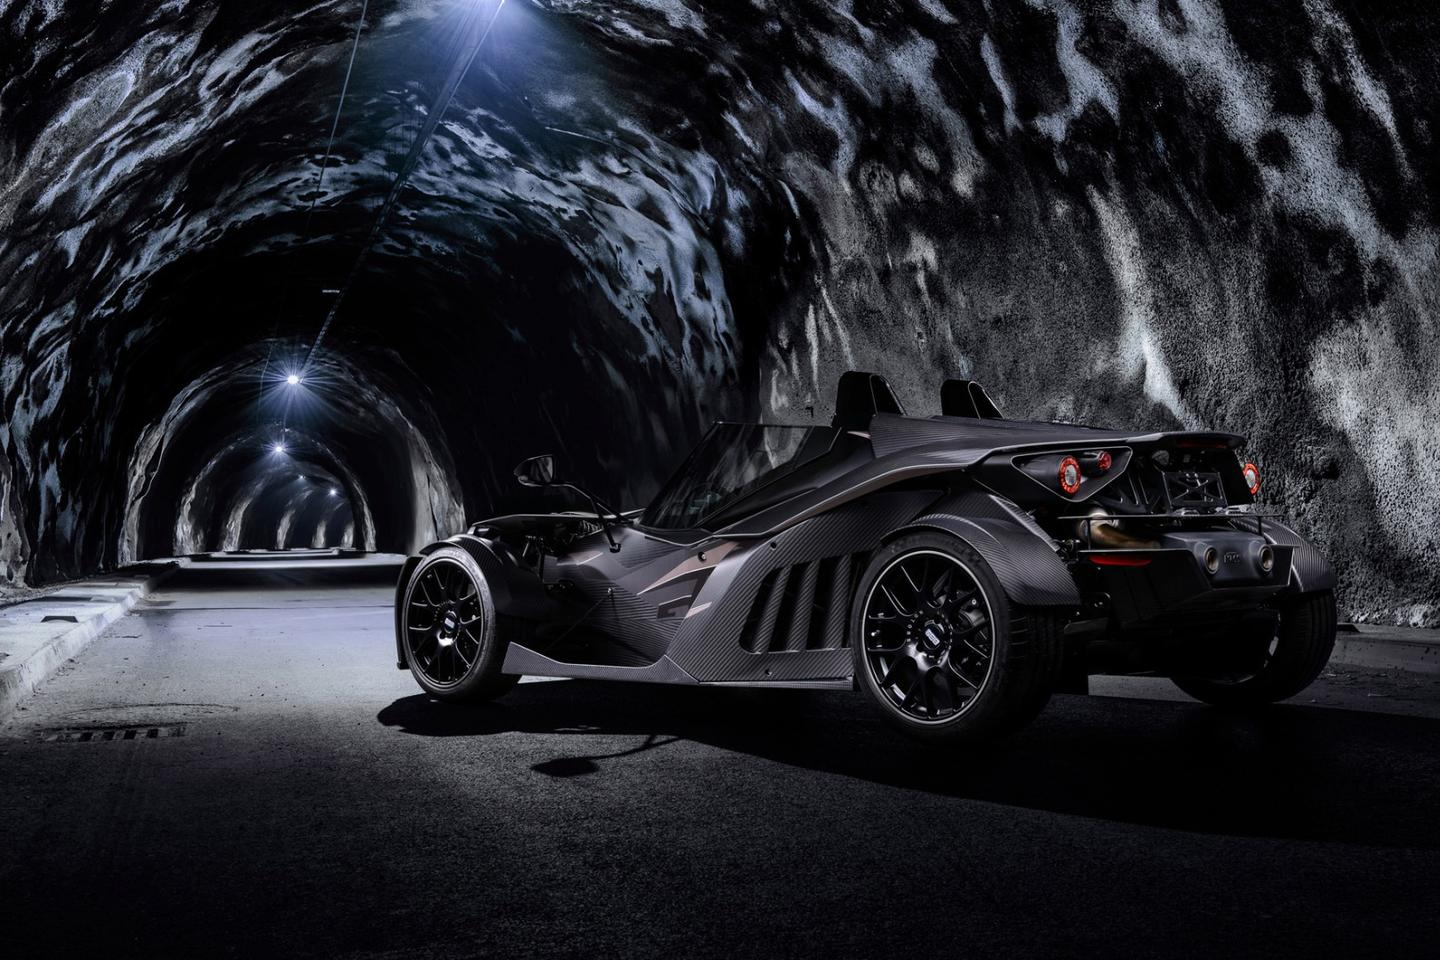 The Black Edition boasts 18-in and 19-in rims